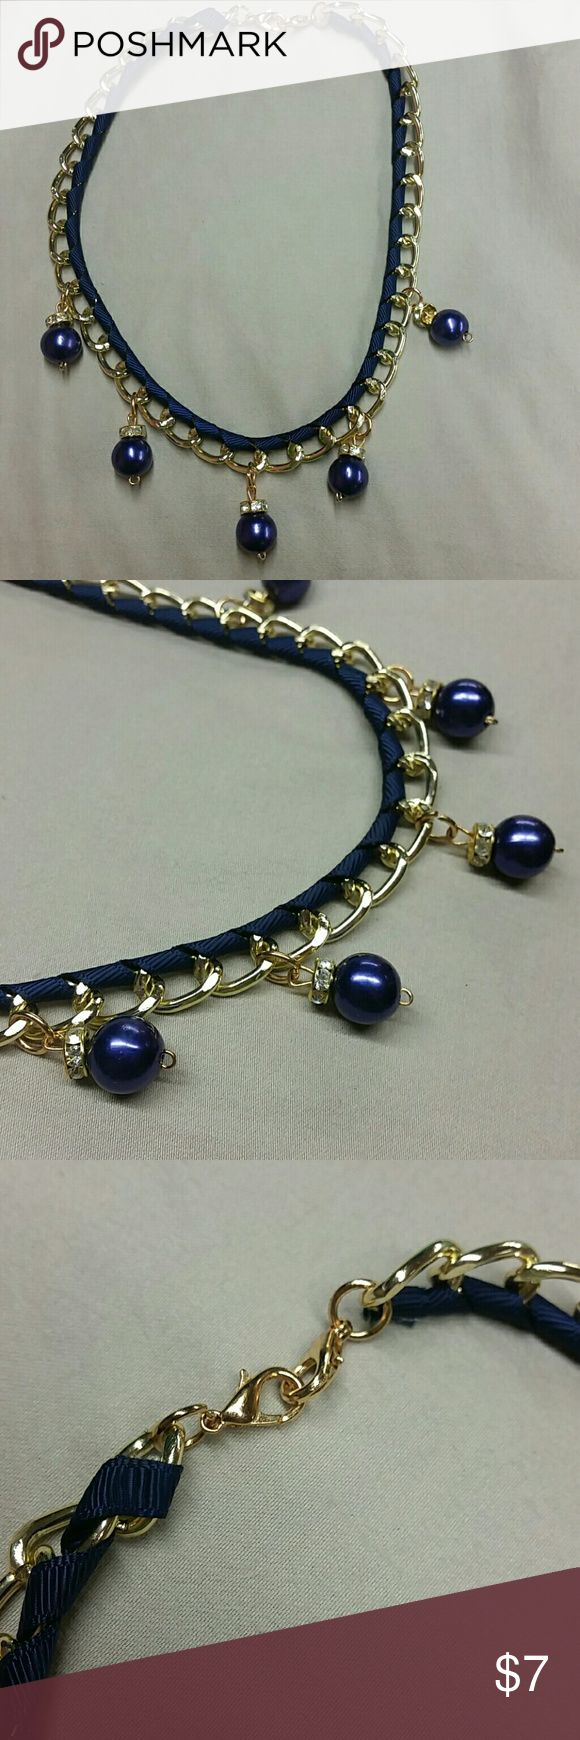 """Gold, blue gothic victorian pearl choker necklace Thick gold chain, dark blue ribbon weaved through it. Dark blue faux pearls with a gold colored cubic zirconia encrusted bead. 2 clasps. 17"""" long  This came attached to a shirt that I no longer have. Not really into it.  Goth, emo, Victorian, steampunk, rave, costume,  junk jewelry,  punk unknown  Jewelry Necklaces"""